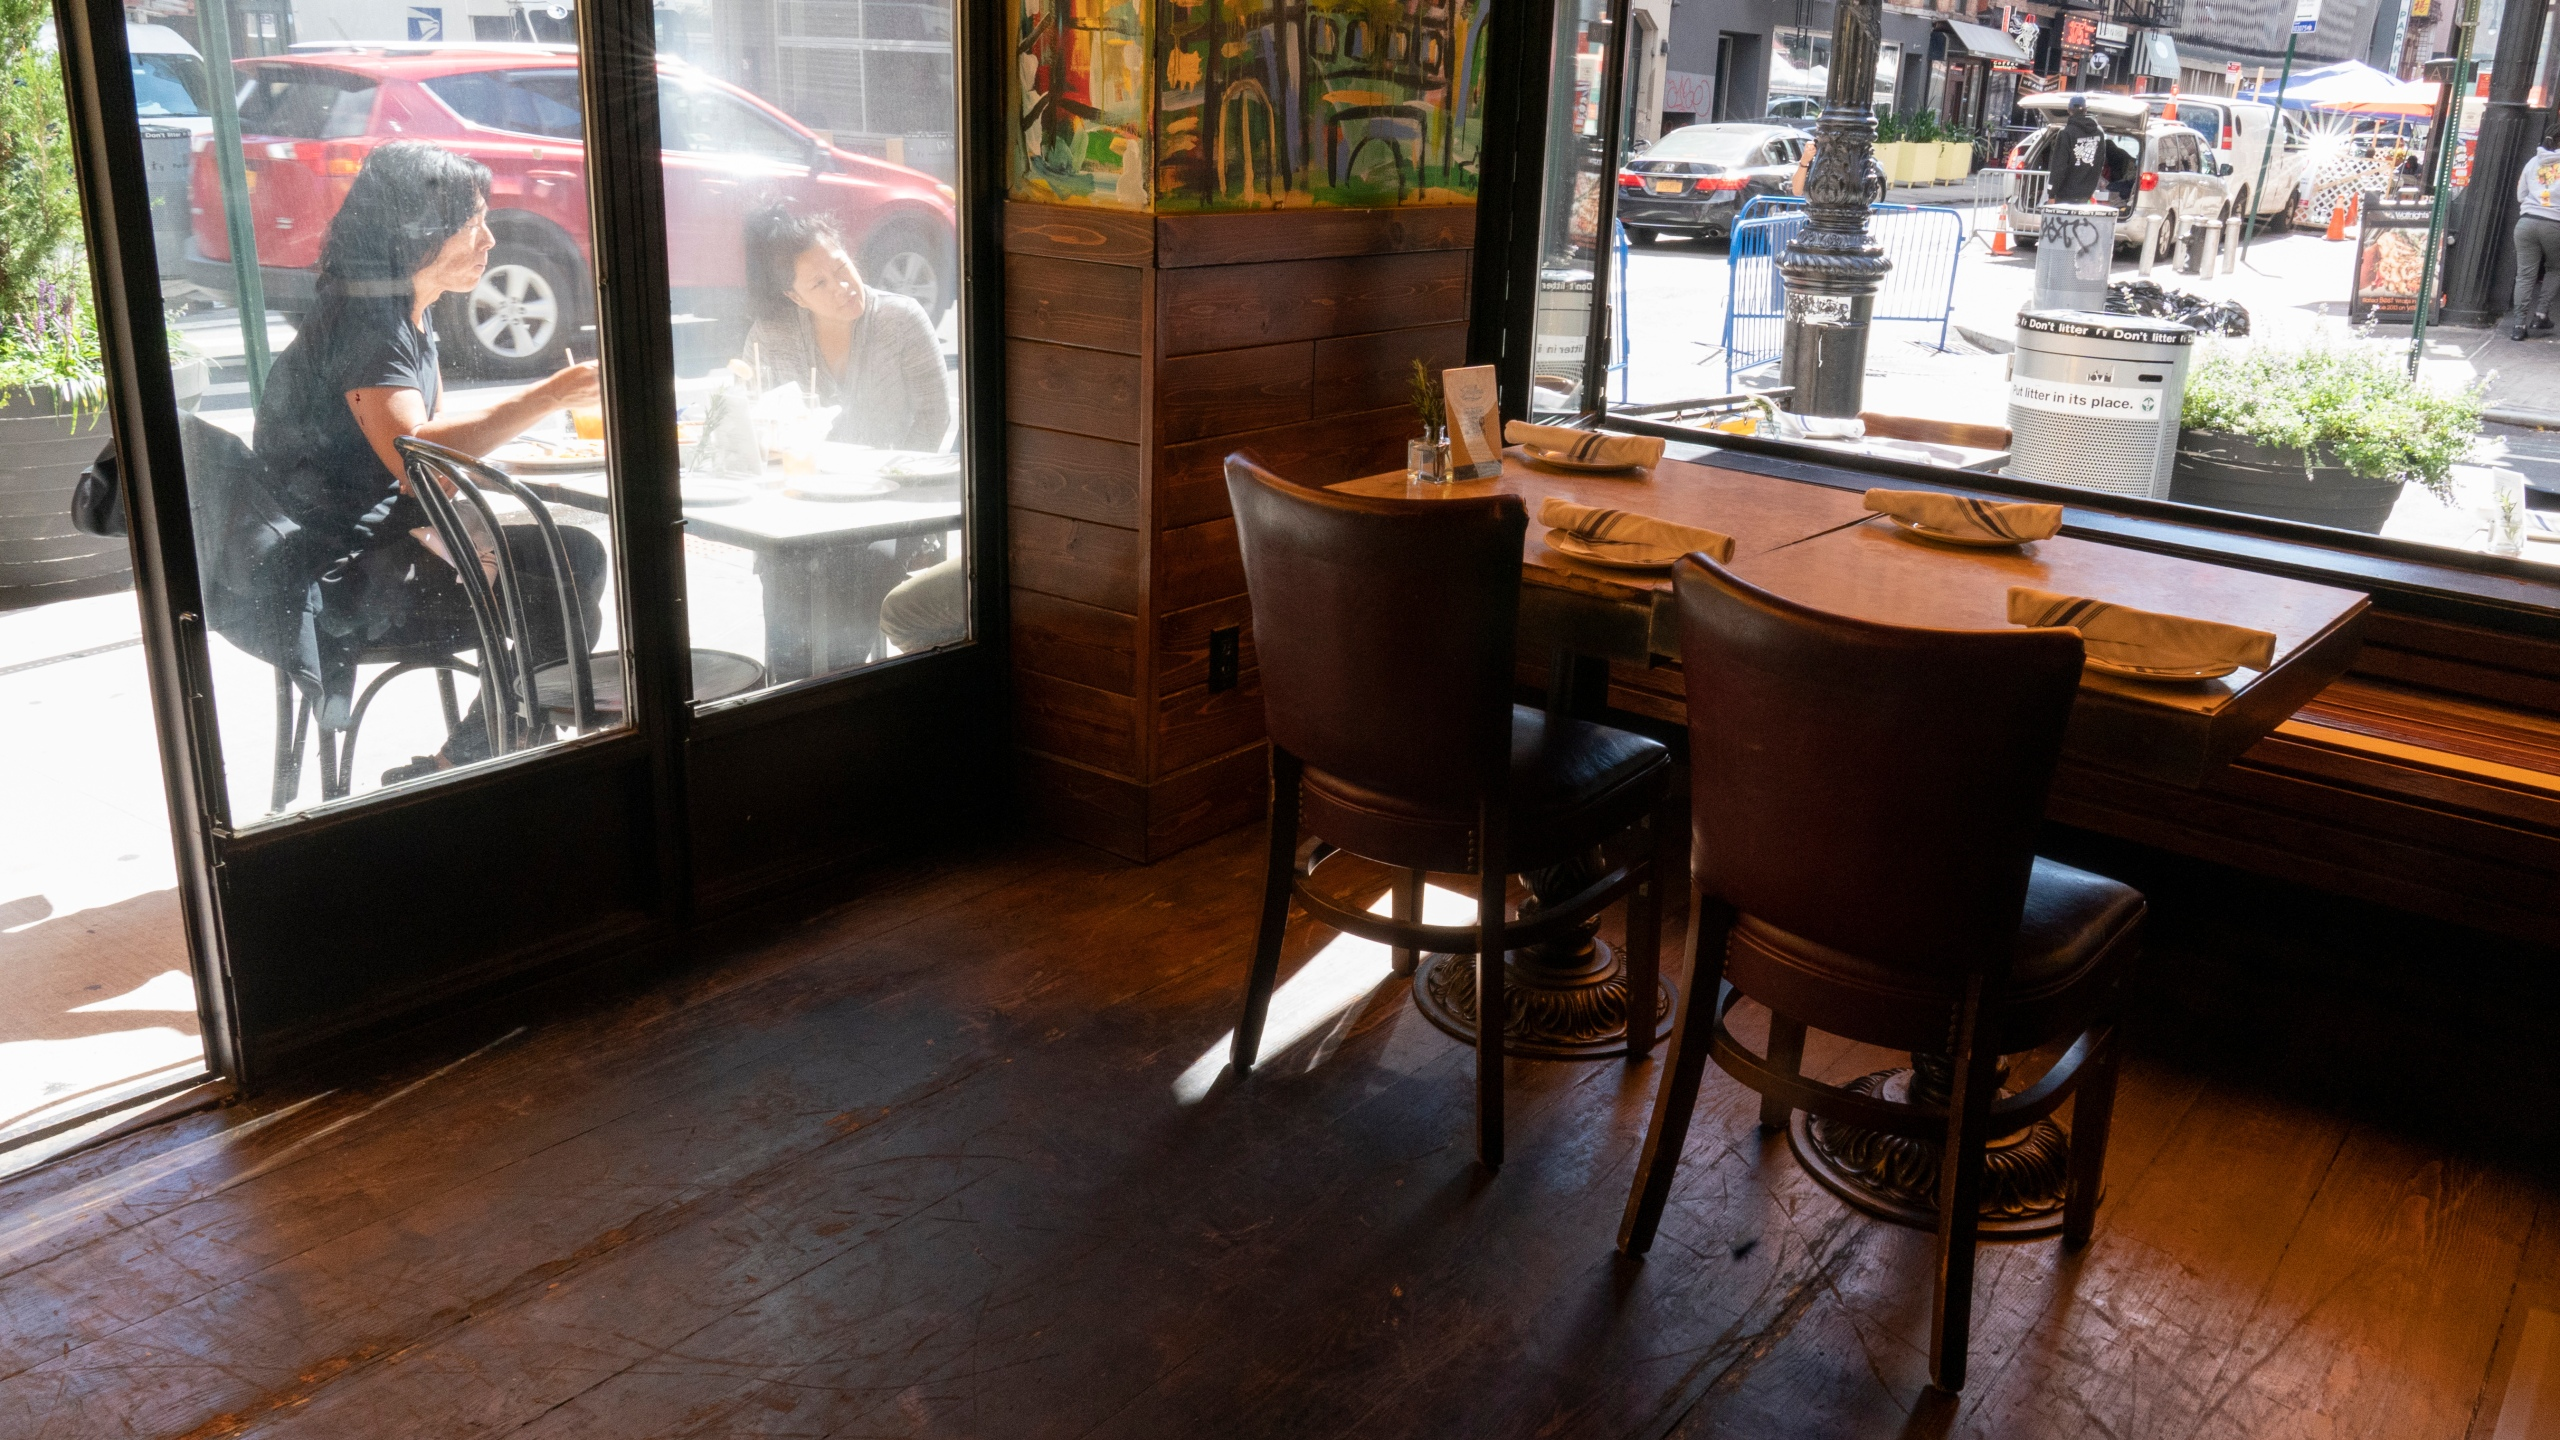 Customers dine outside a New York restaurant while an indoor table sits empty